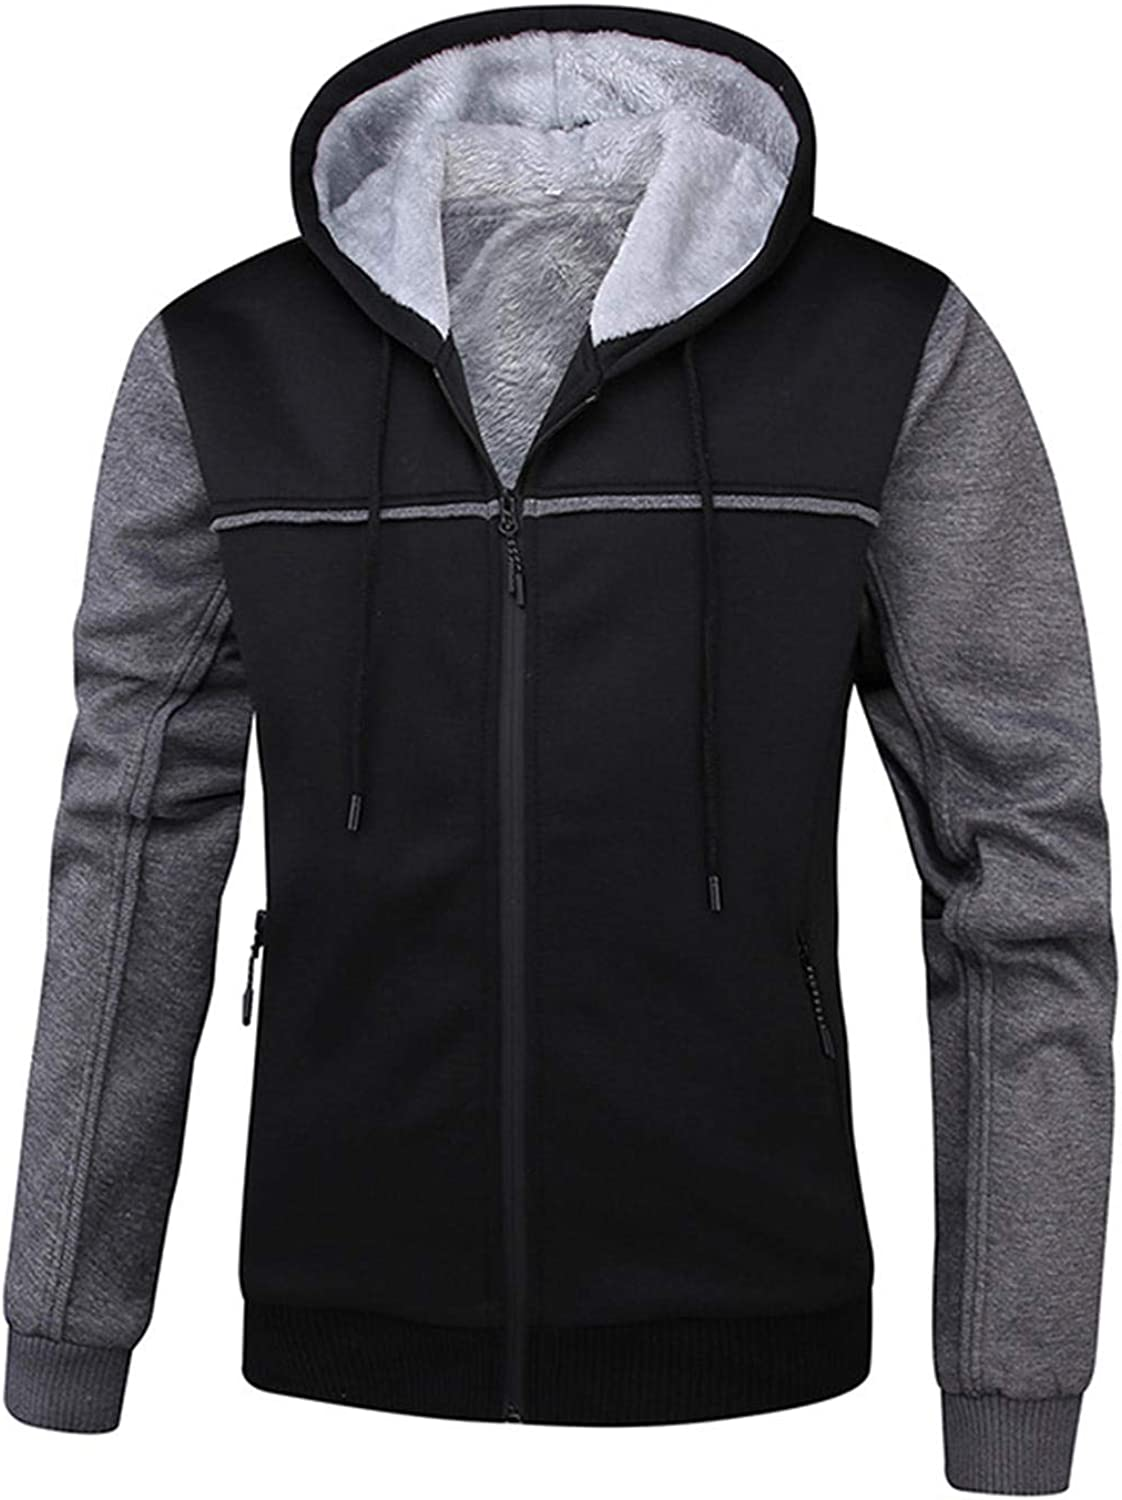 Soluo 2020 Clearance Men's Pullover Winter Workout Fleece Hoodie Jackets Full Zip Wool Warm Thick Coats (Black,Large)